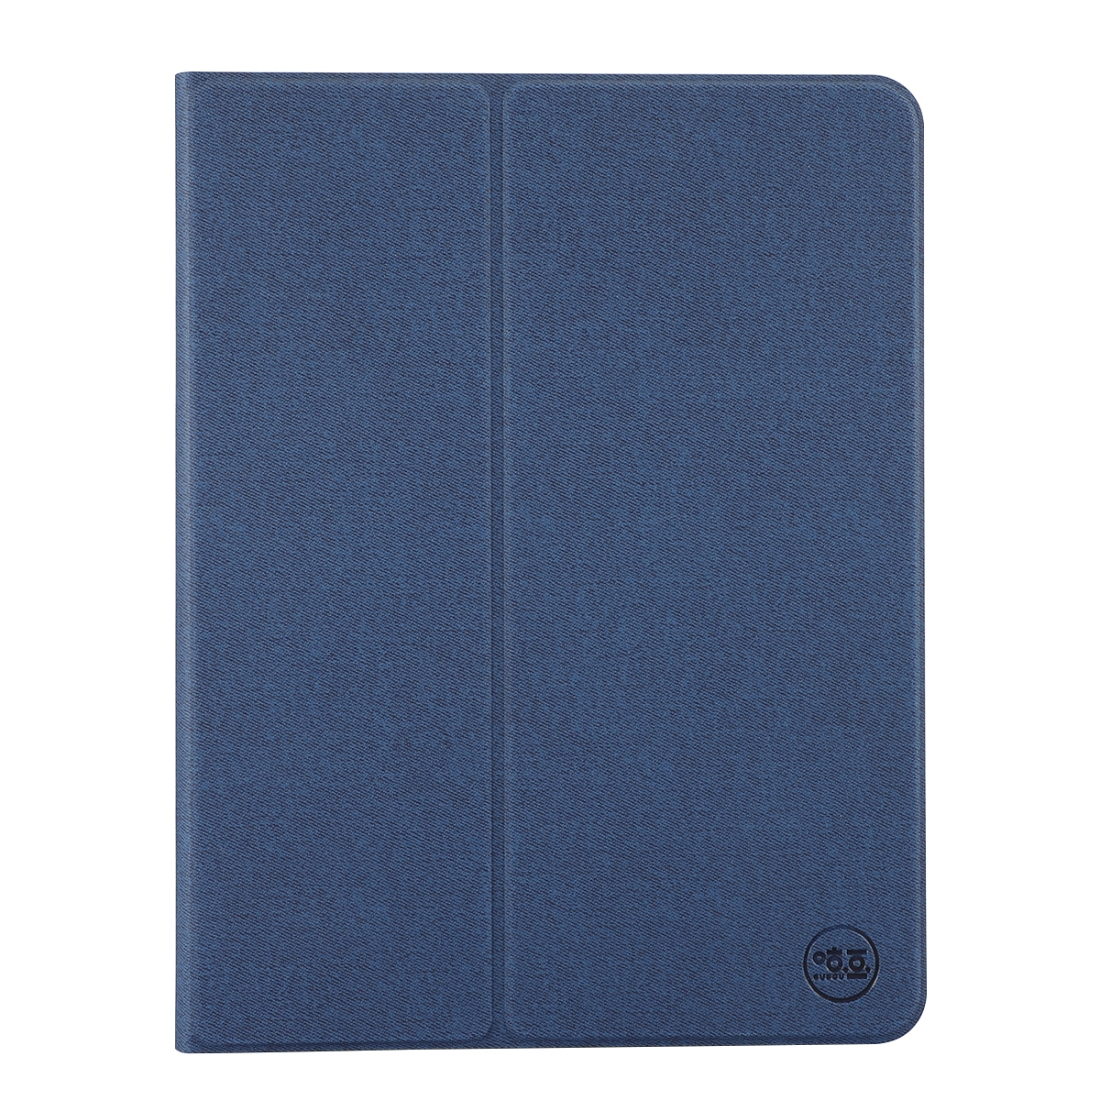 Fine Cloth Pattern Flat Leather iPad Pro 12.9 Case, with Pen Holder (Dark Blue)